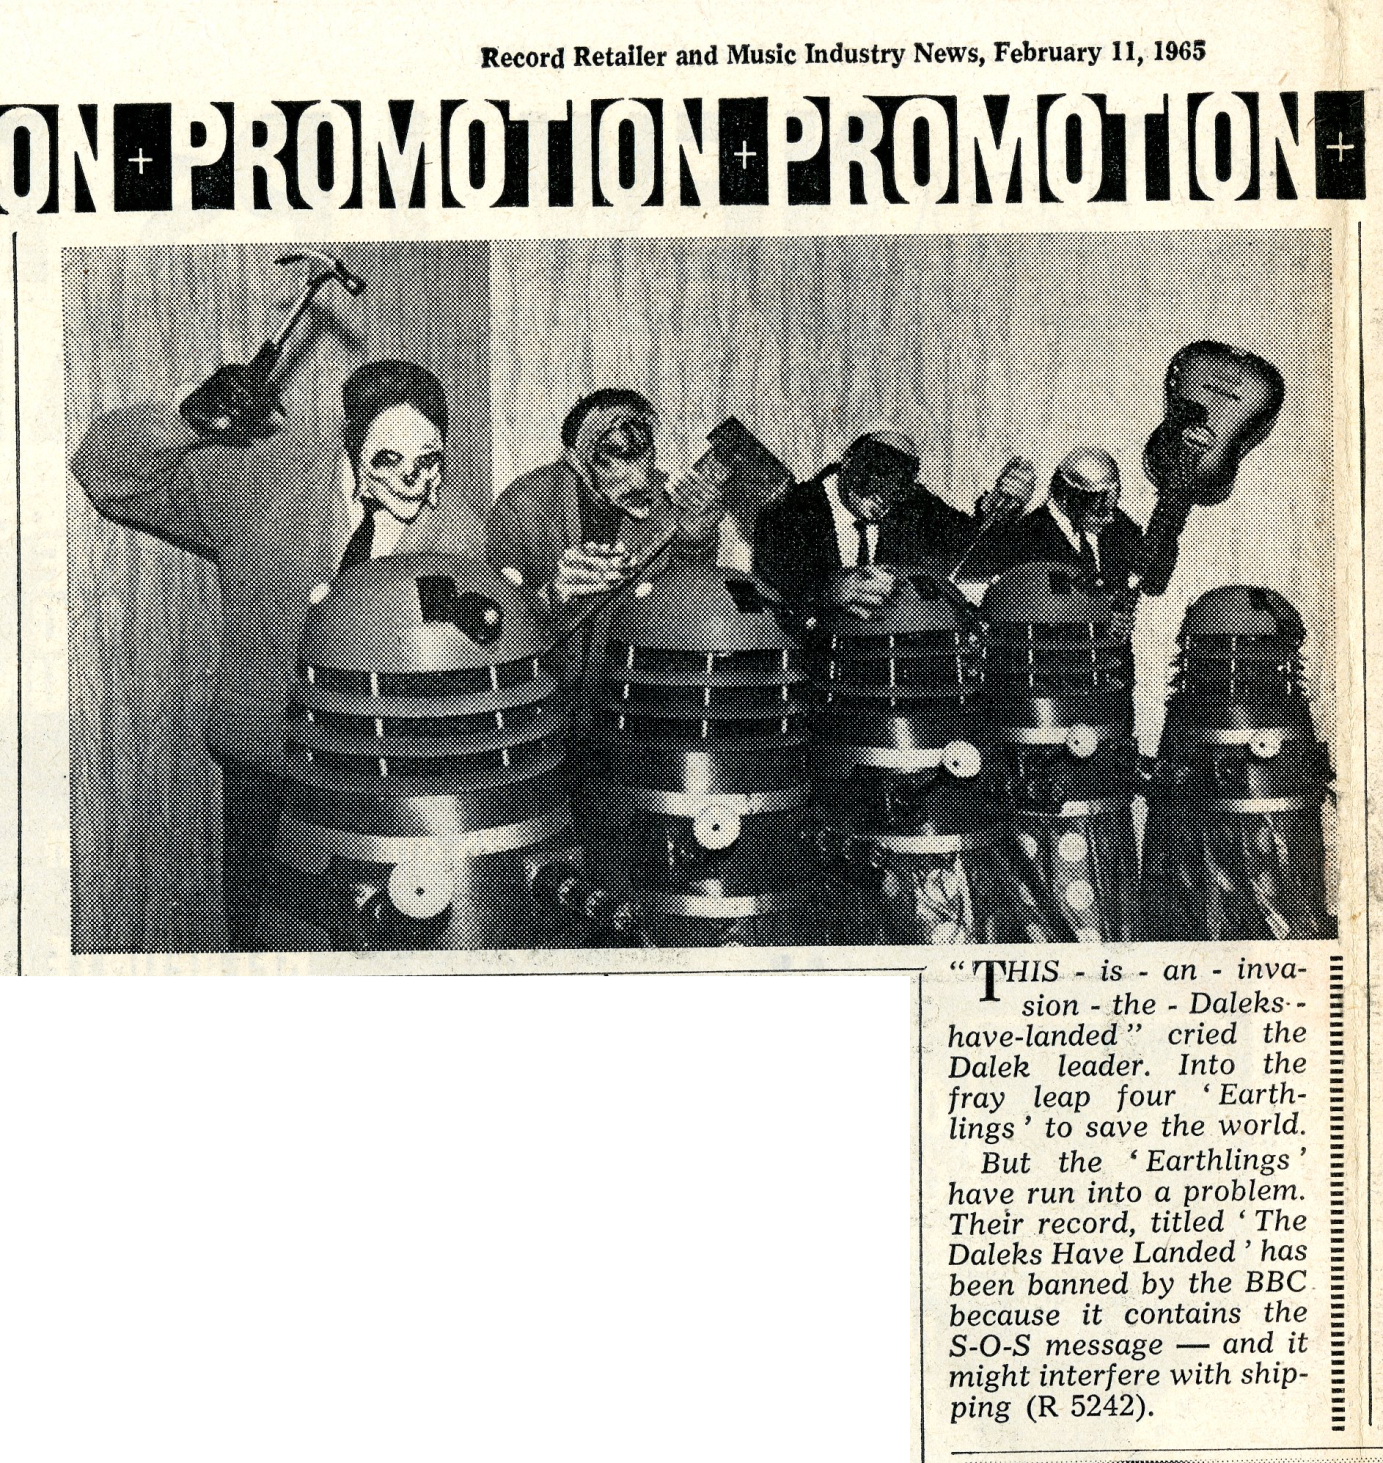 Record Retailer and Music Industry News, 11 February 1965, article coinciding with the release of The Earthlings, The Landing of the Daleks